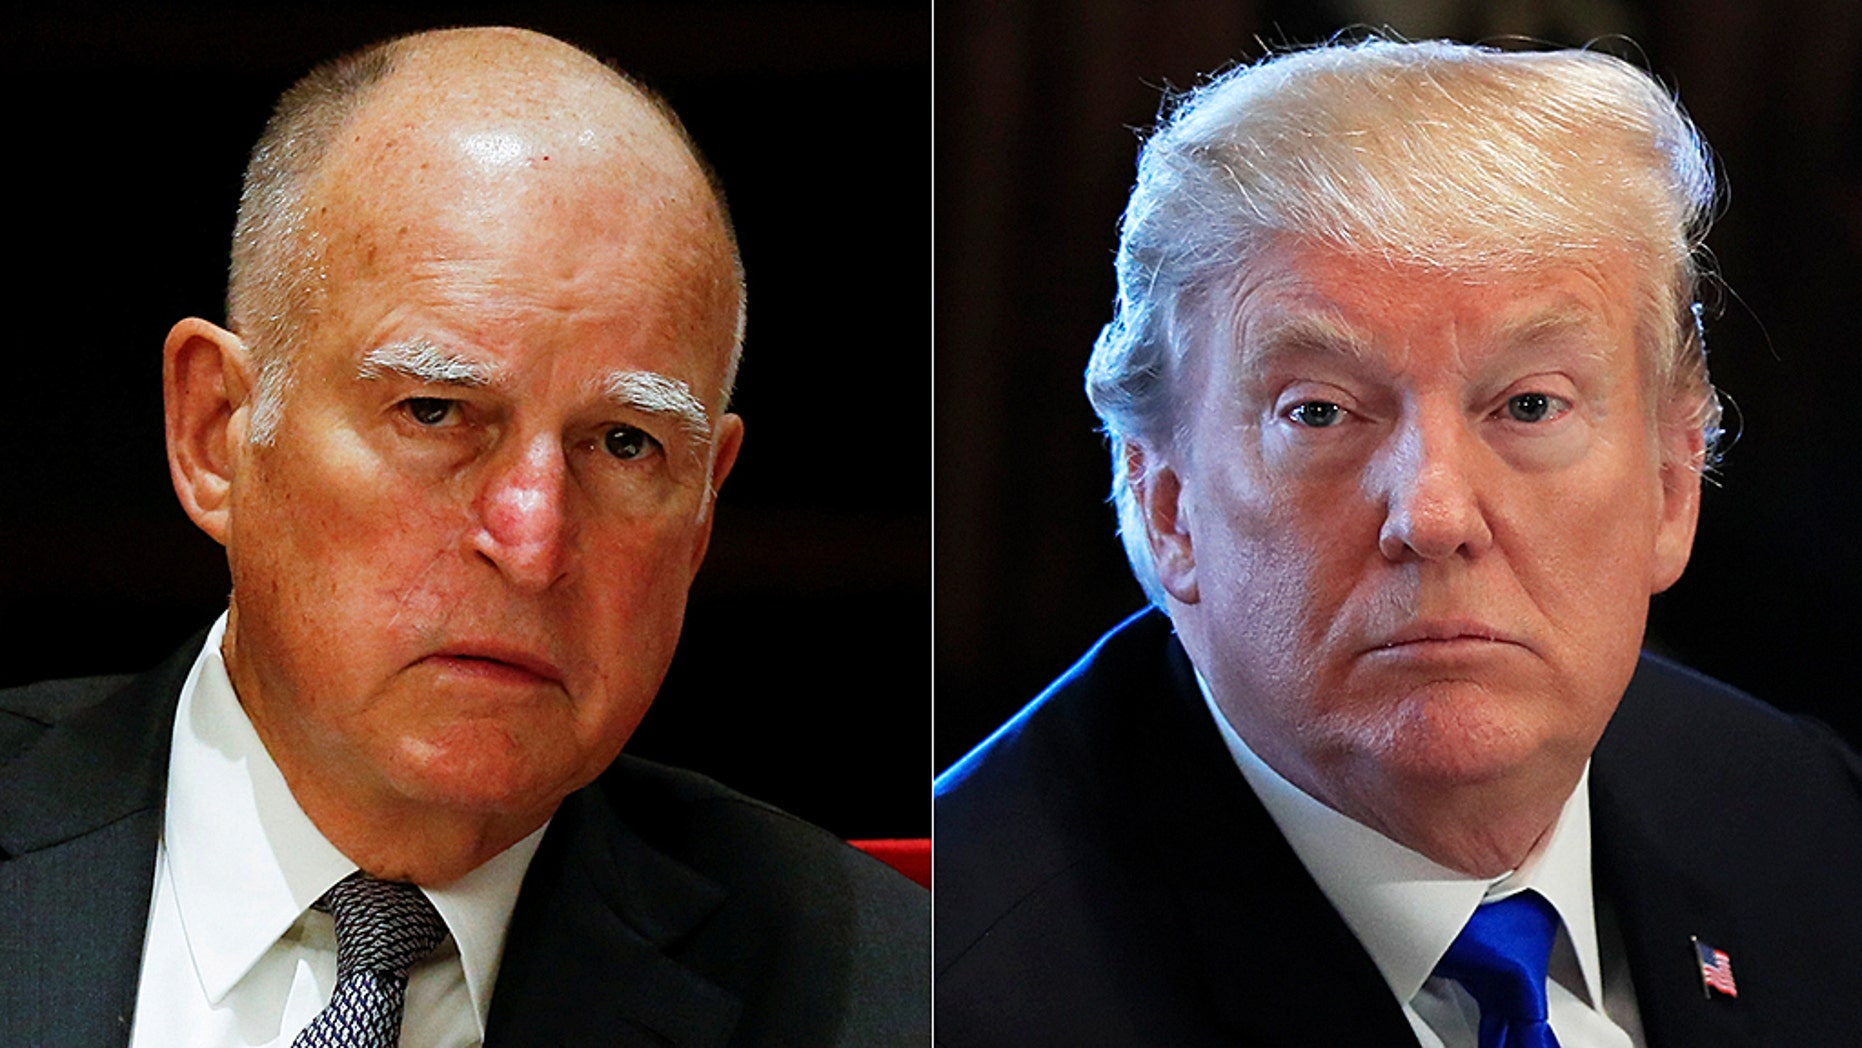 As twin wildfires have destroyed more than 1,000 homes in Northern California, President Trump (right) and California Democratic Gov. Jerry Brown (left) are both making claims – and provoking criticism – about why the fires continue to spread.